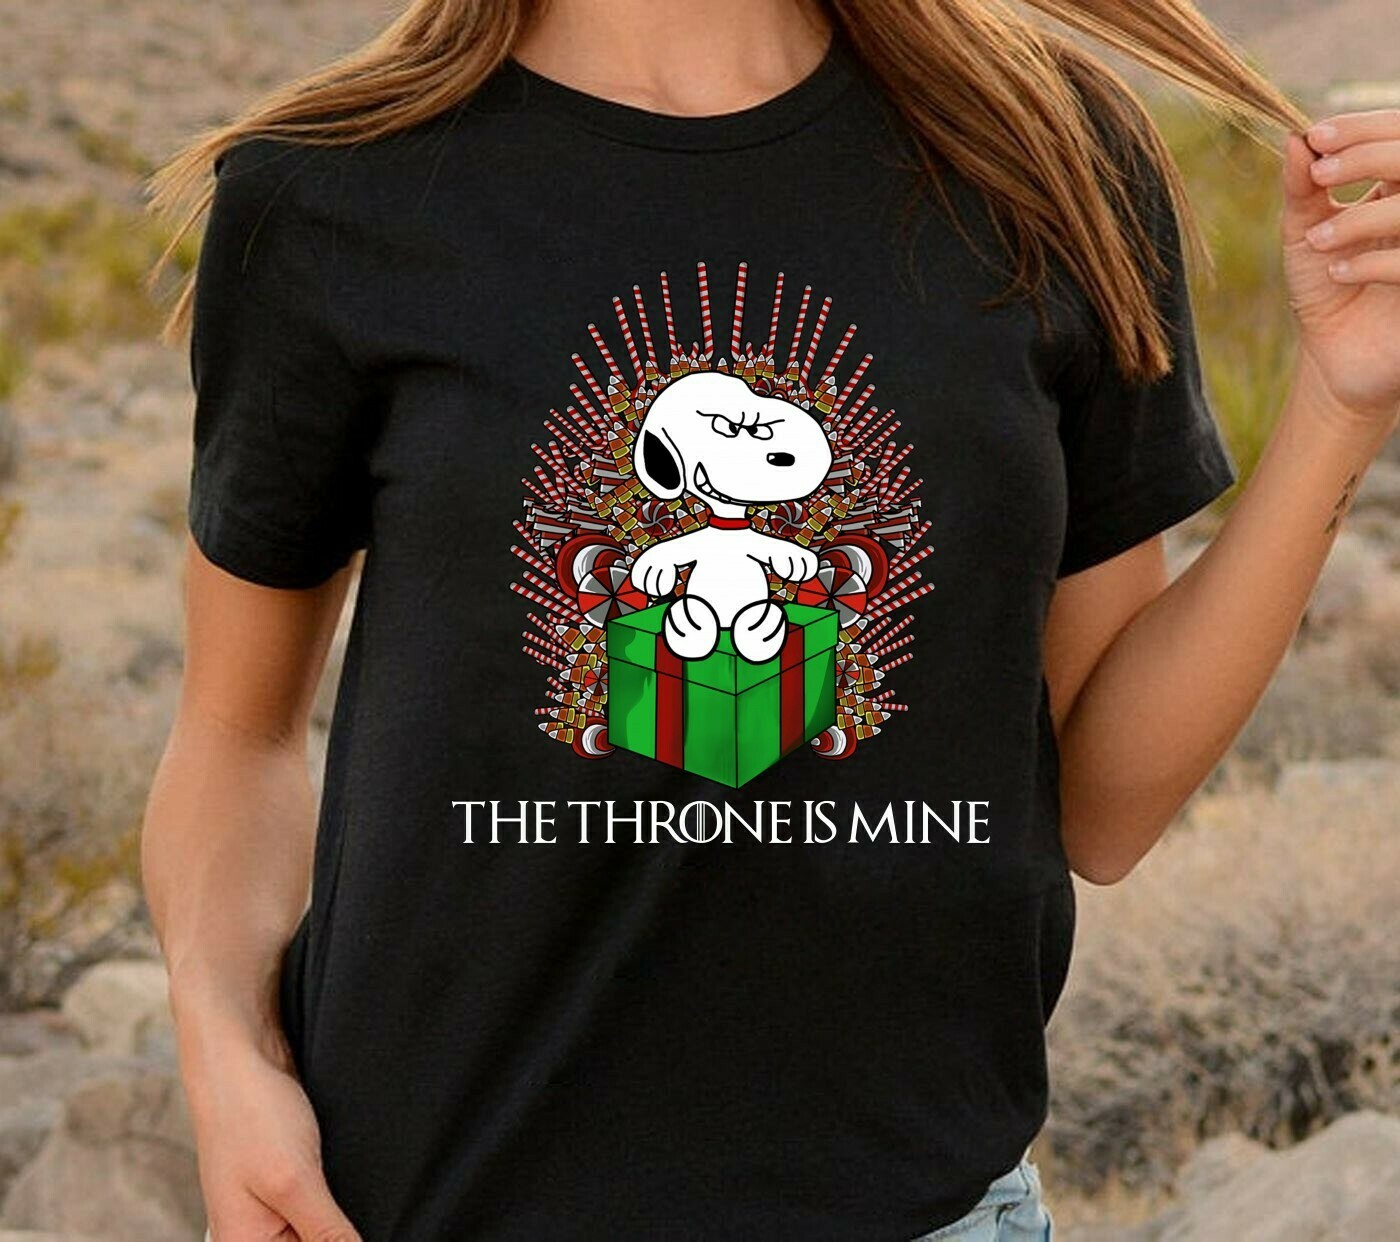 The Throne Is Mine Snoopy Christmas,Snoopy Woodstock Charlie Brown Snowman Xmas Tree Merry Christmas 2019 Gifts Noel Family Party T-Shirt Long Sleeve Sweatshirt Hoodie Jolly Family Gifts